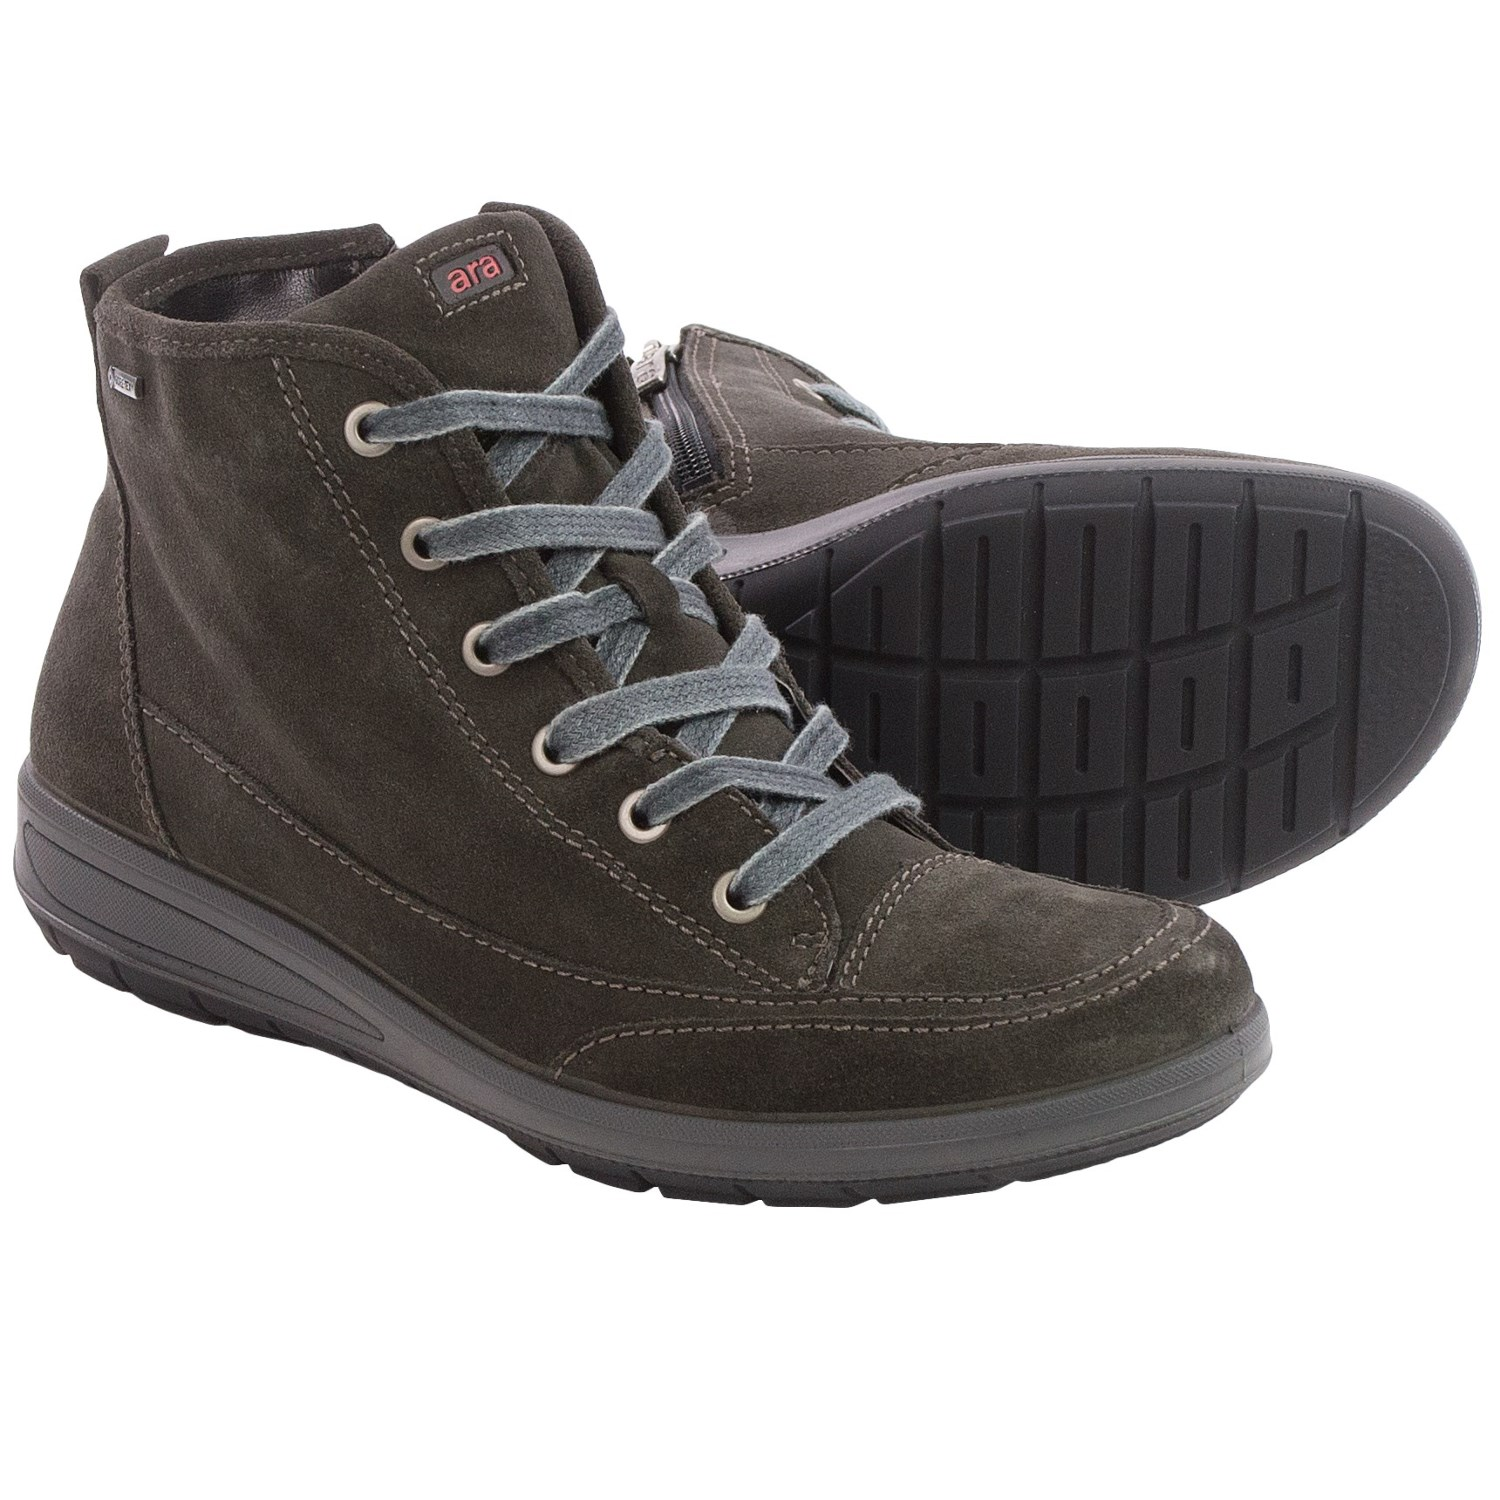 Wonderful Vasque Wasatch Gore-Texu00ae Hiking Boots - Waterproof (For Women) - Save 27%